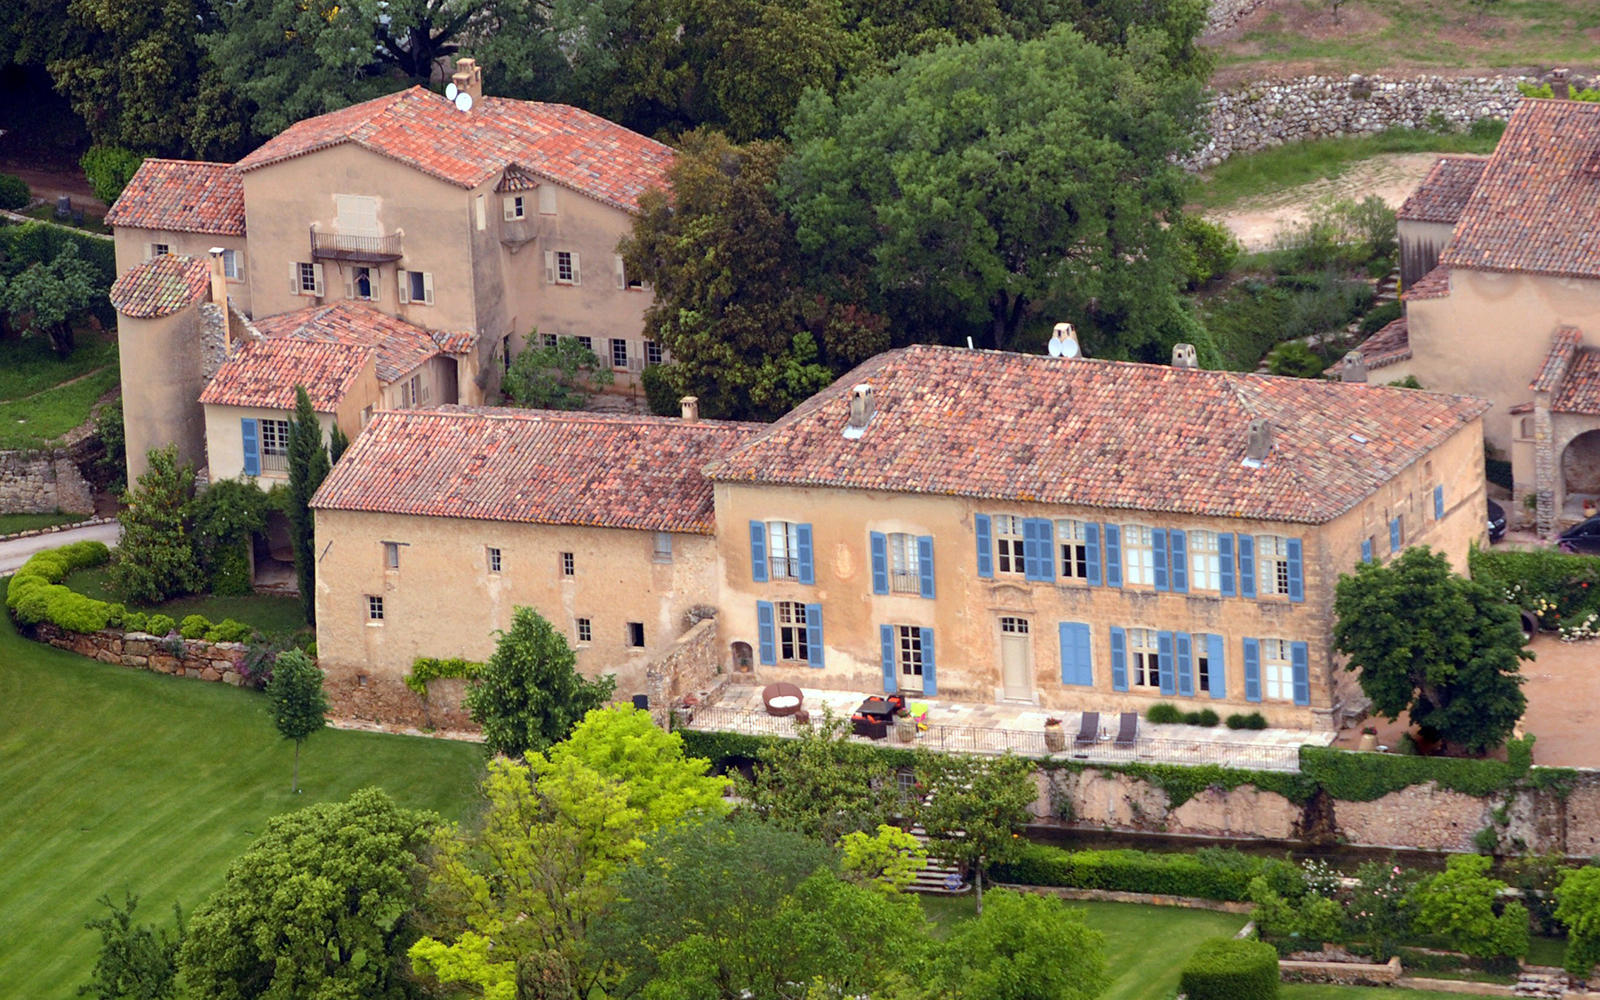 Brad Pitt and Angelina Jolie: Correns, France